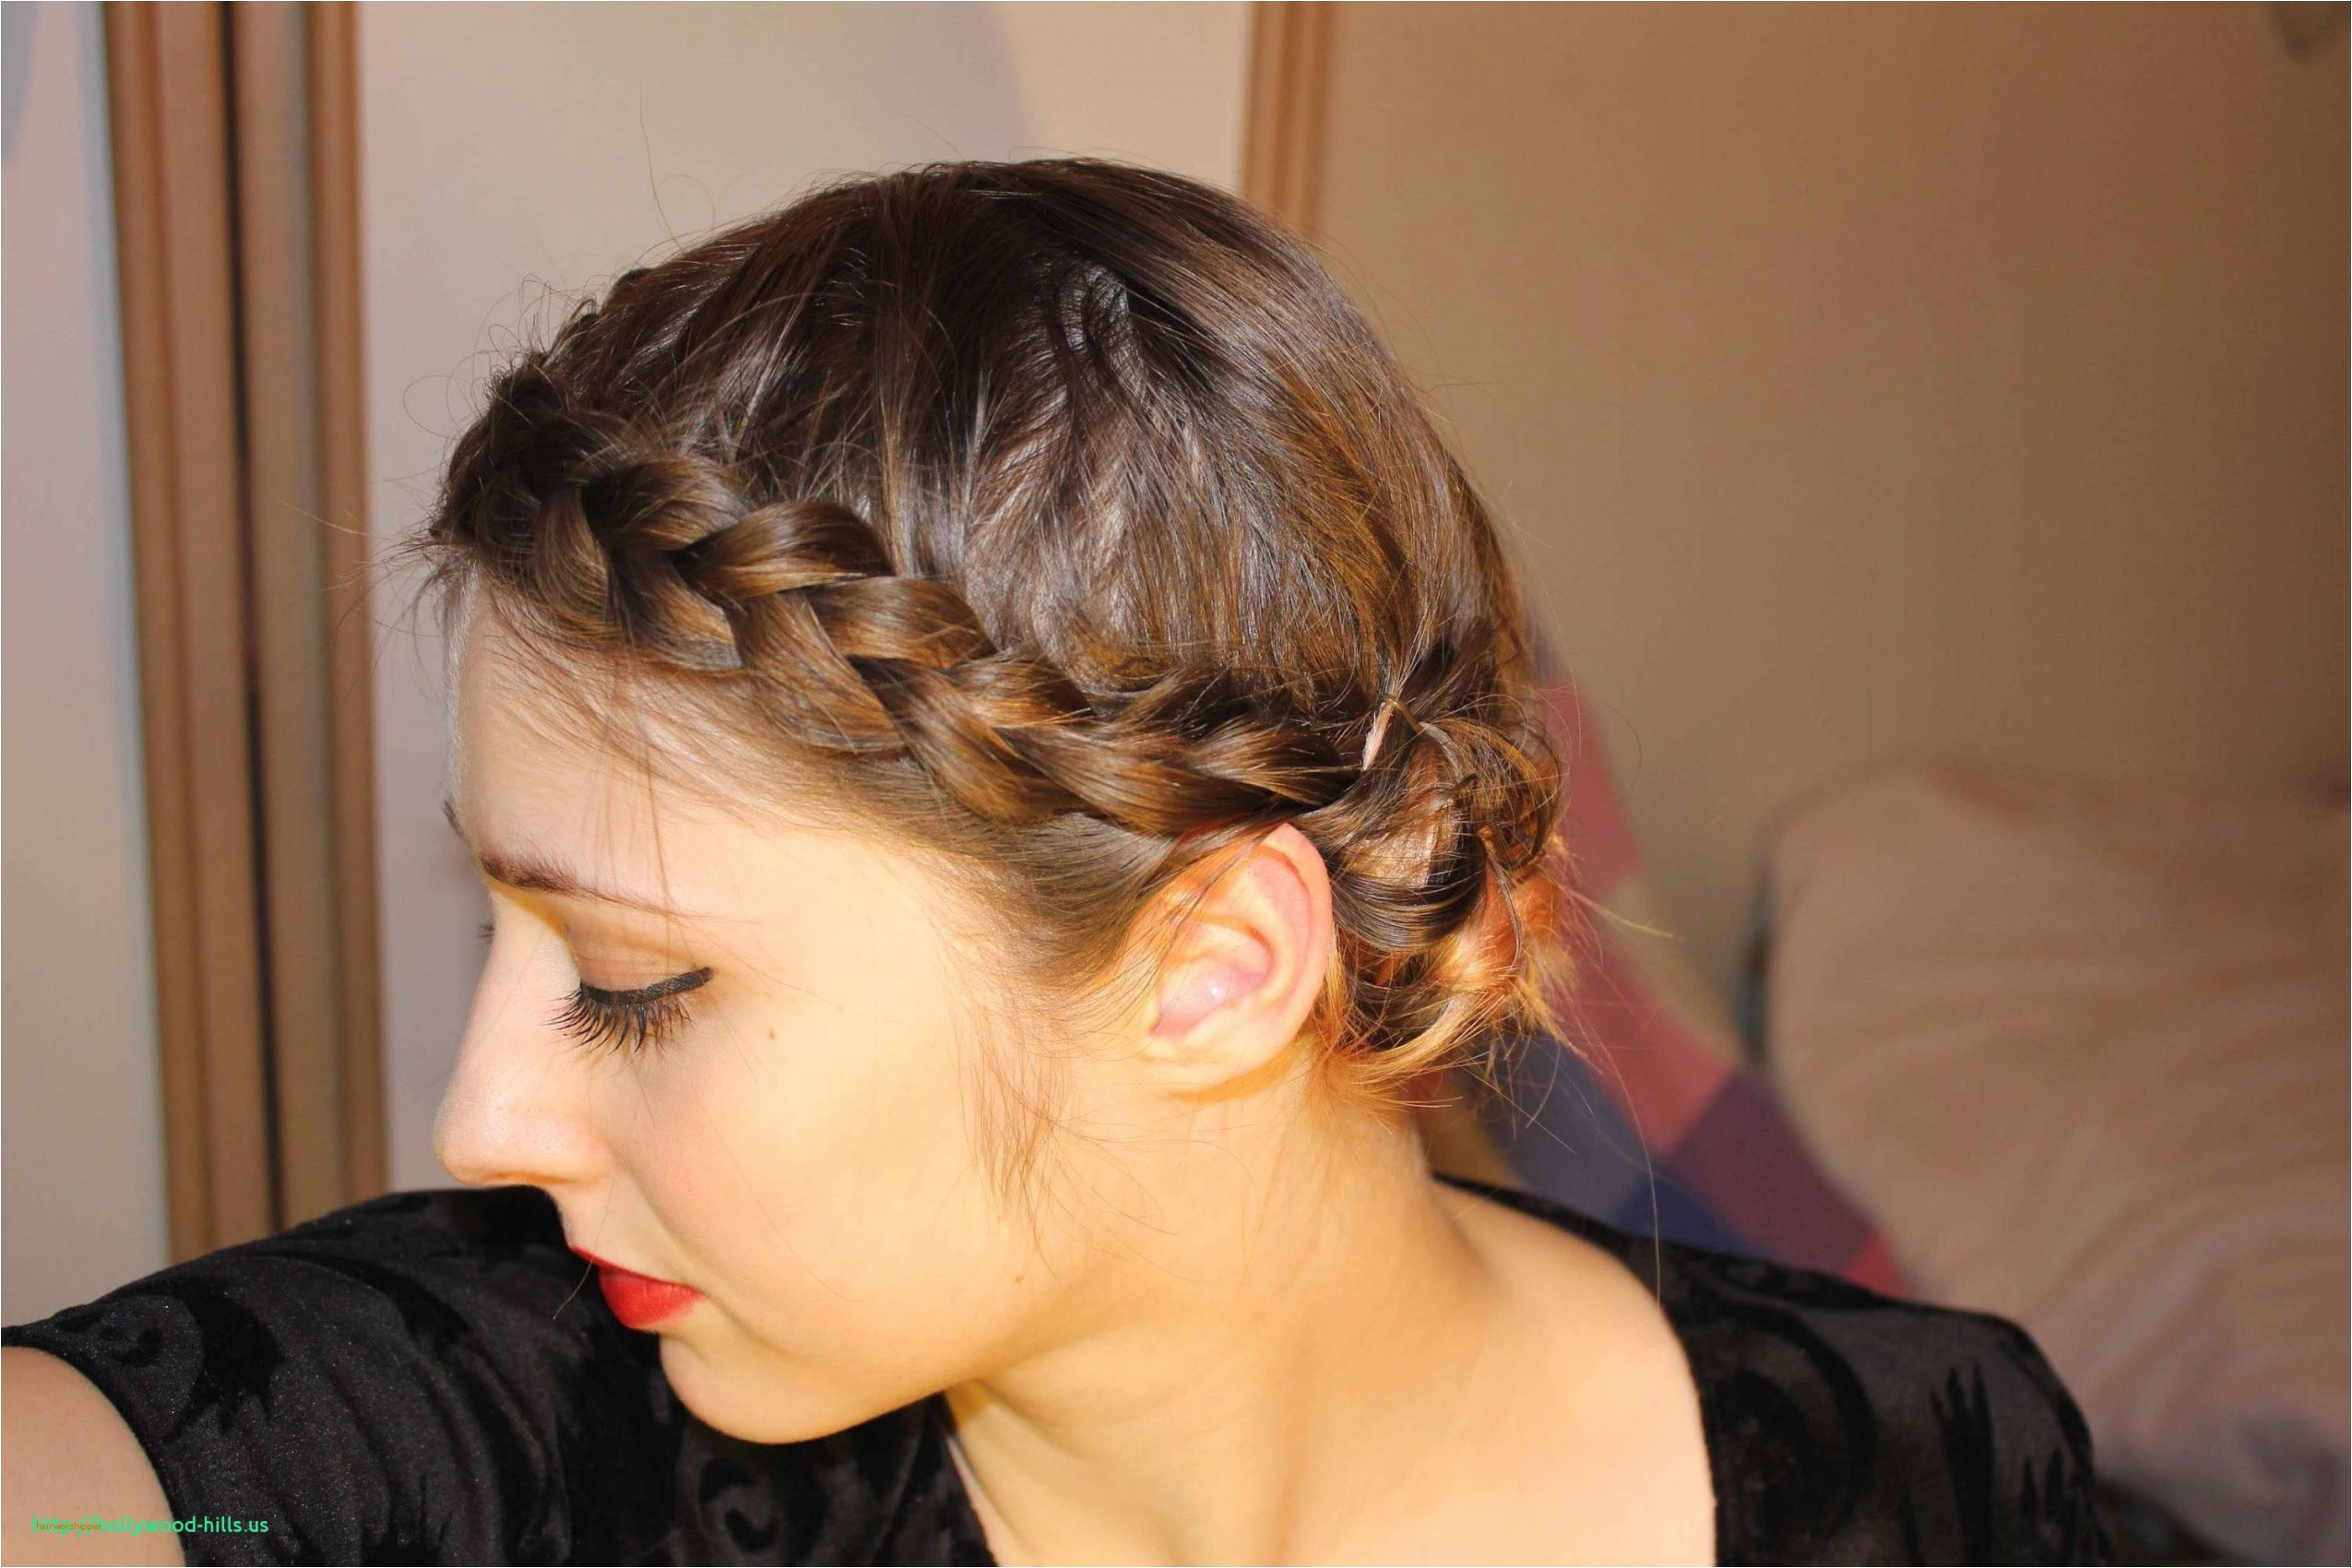 New Simple Indian Wedding Hairstyles for Medium Hair – Hair Elegant Easy Wedding Hairstyles Youtube 33